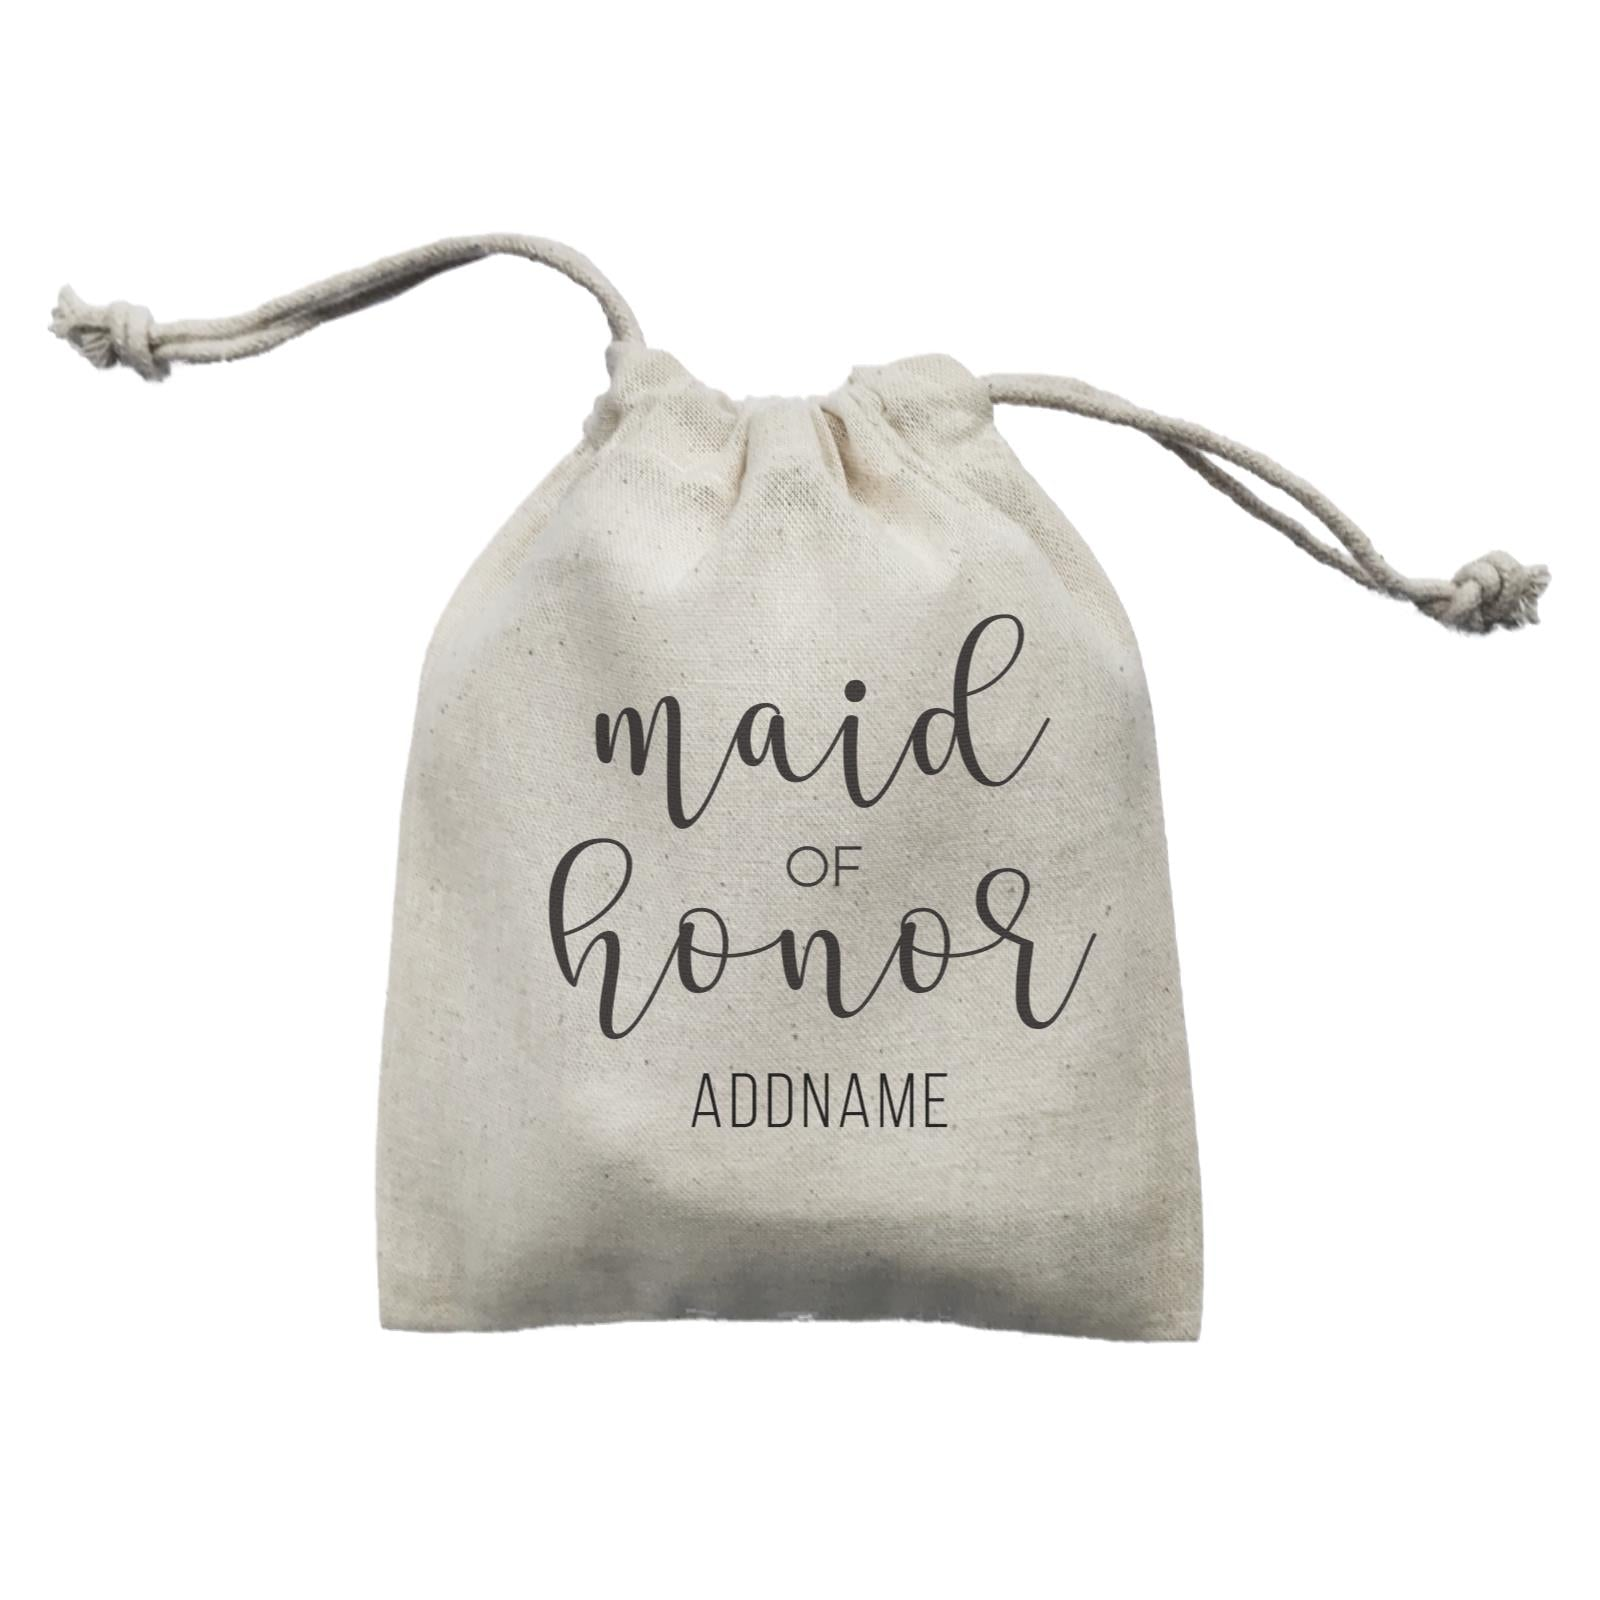 Bridesmaid Calligraphy Maid Of Honour Subtle Addname Mini Accessories Mini Pouch